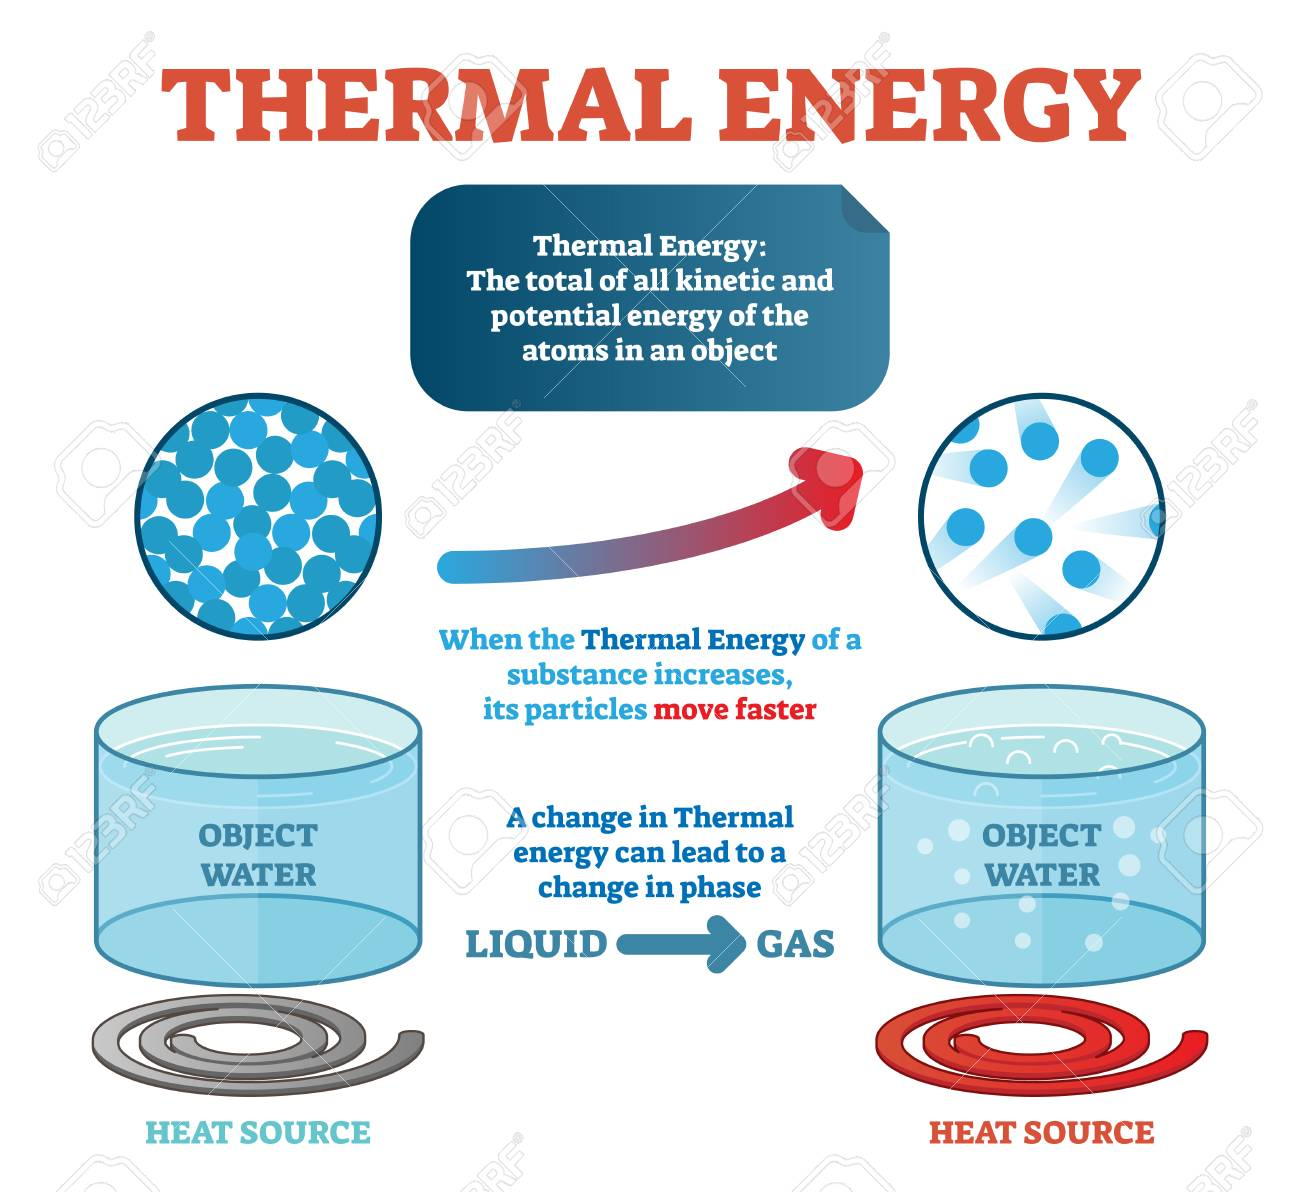 hight resolution of thermal energy physics definition example with water and kinetic energy moving particles generating heat